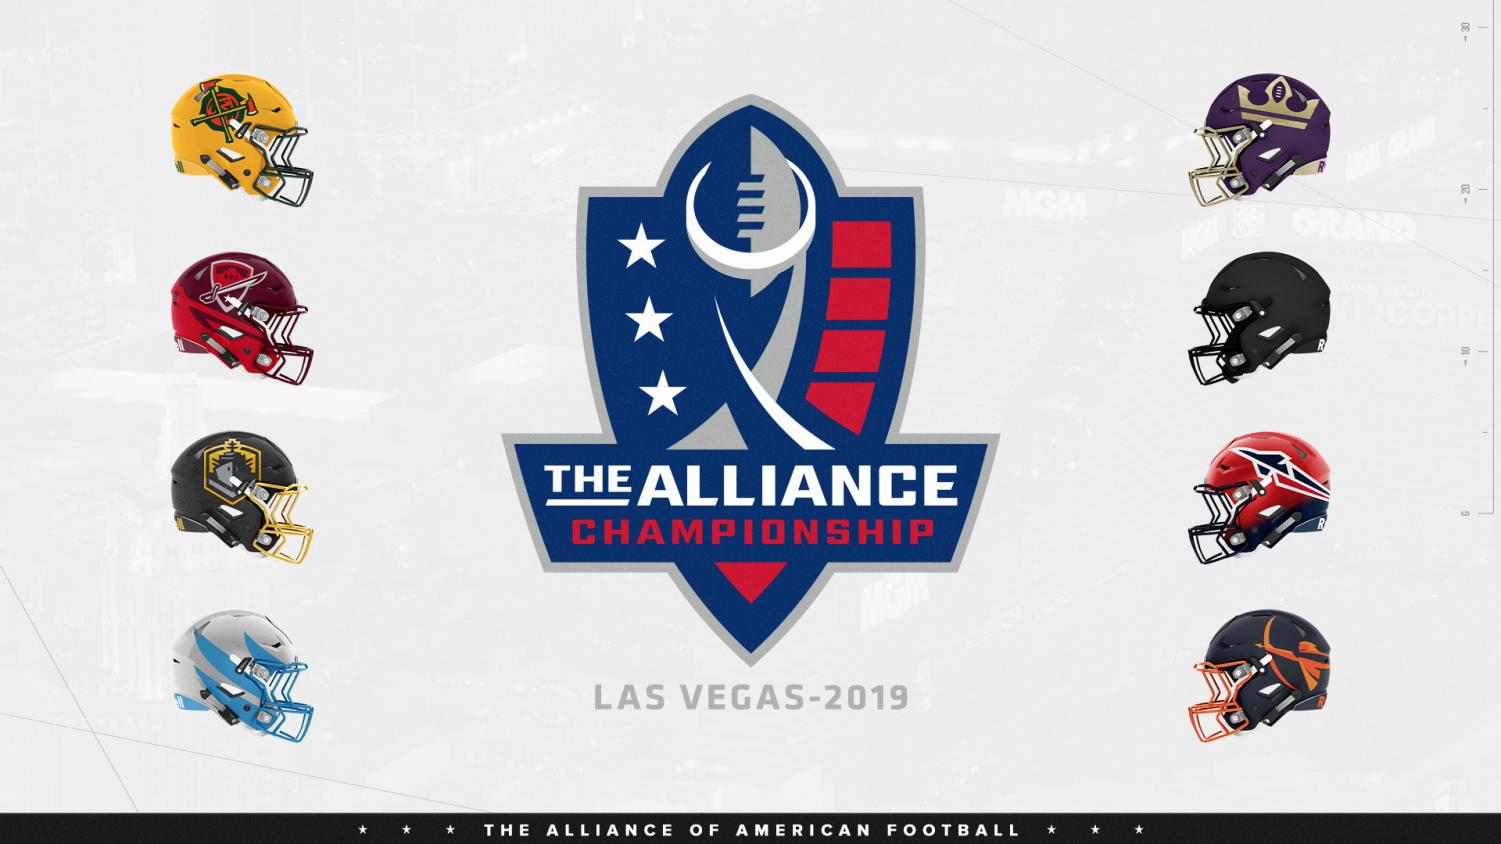 Credit: Alliance of American Football